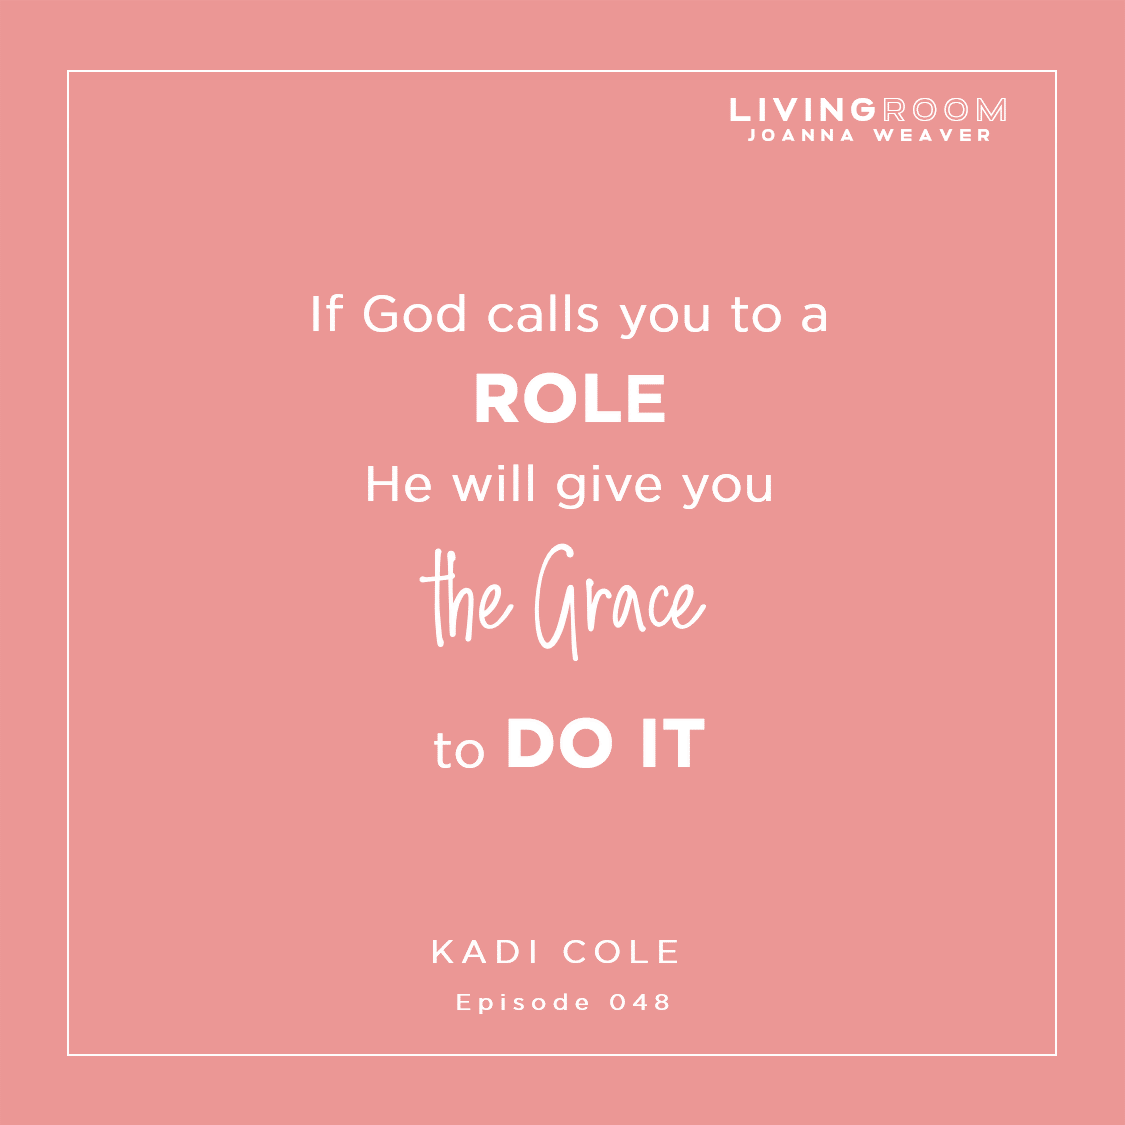 """""""If God calls you to a role, He will give you the grace to do it."""" - Kadi Cole - The Living Room Podcast - Ep. -48"""